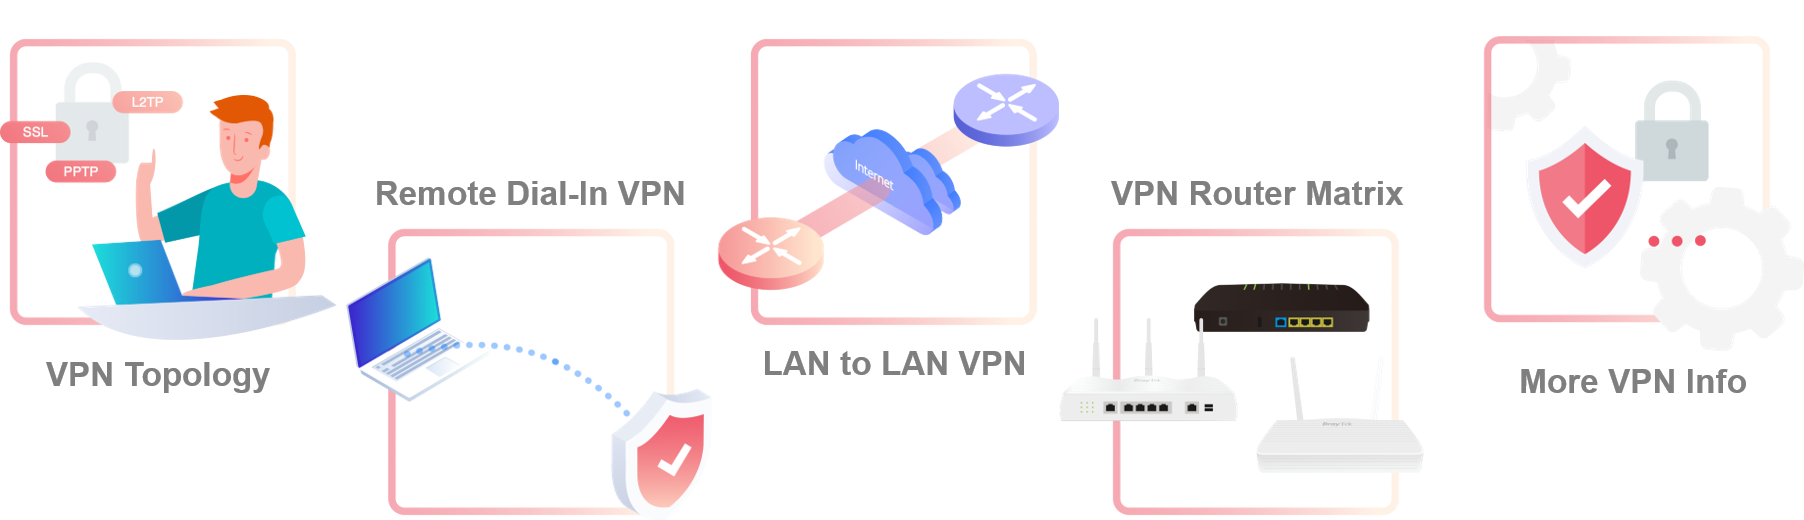 Work from Home VPN Solution in 5 steps